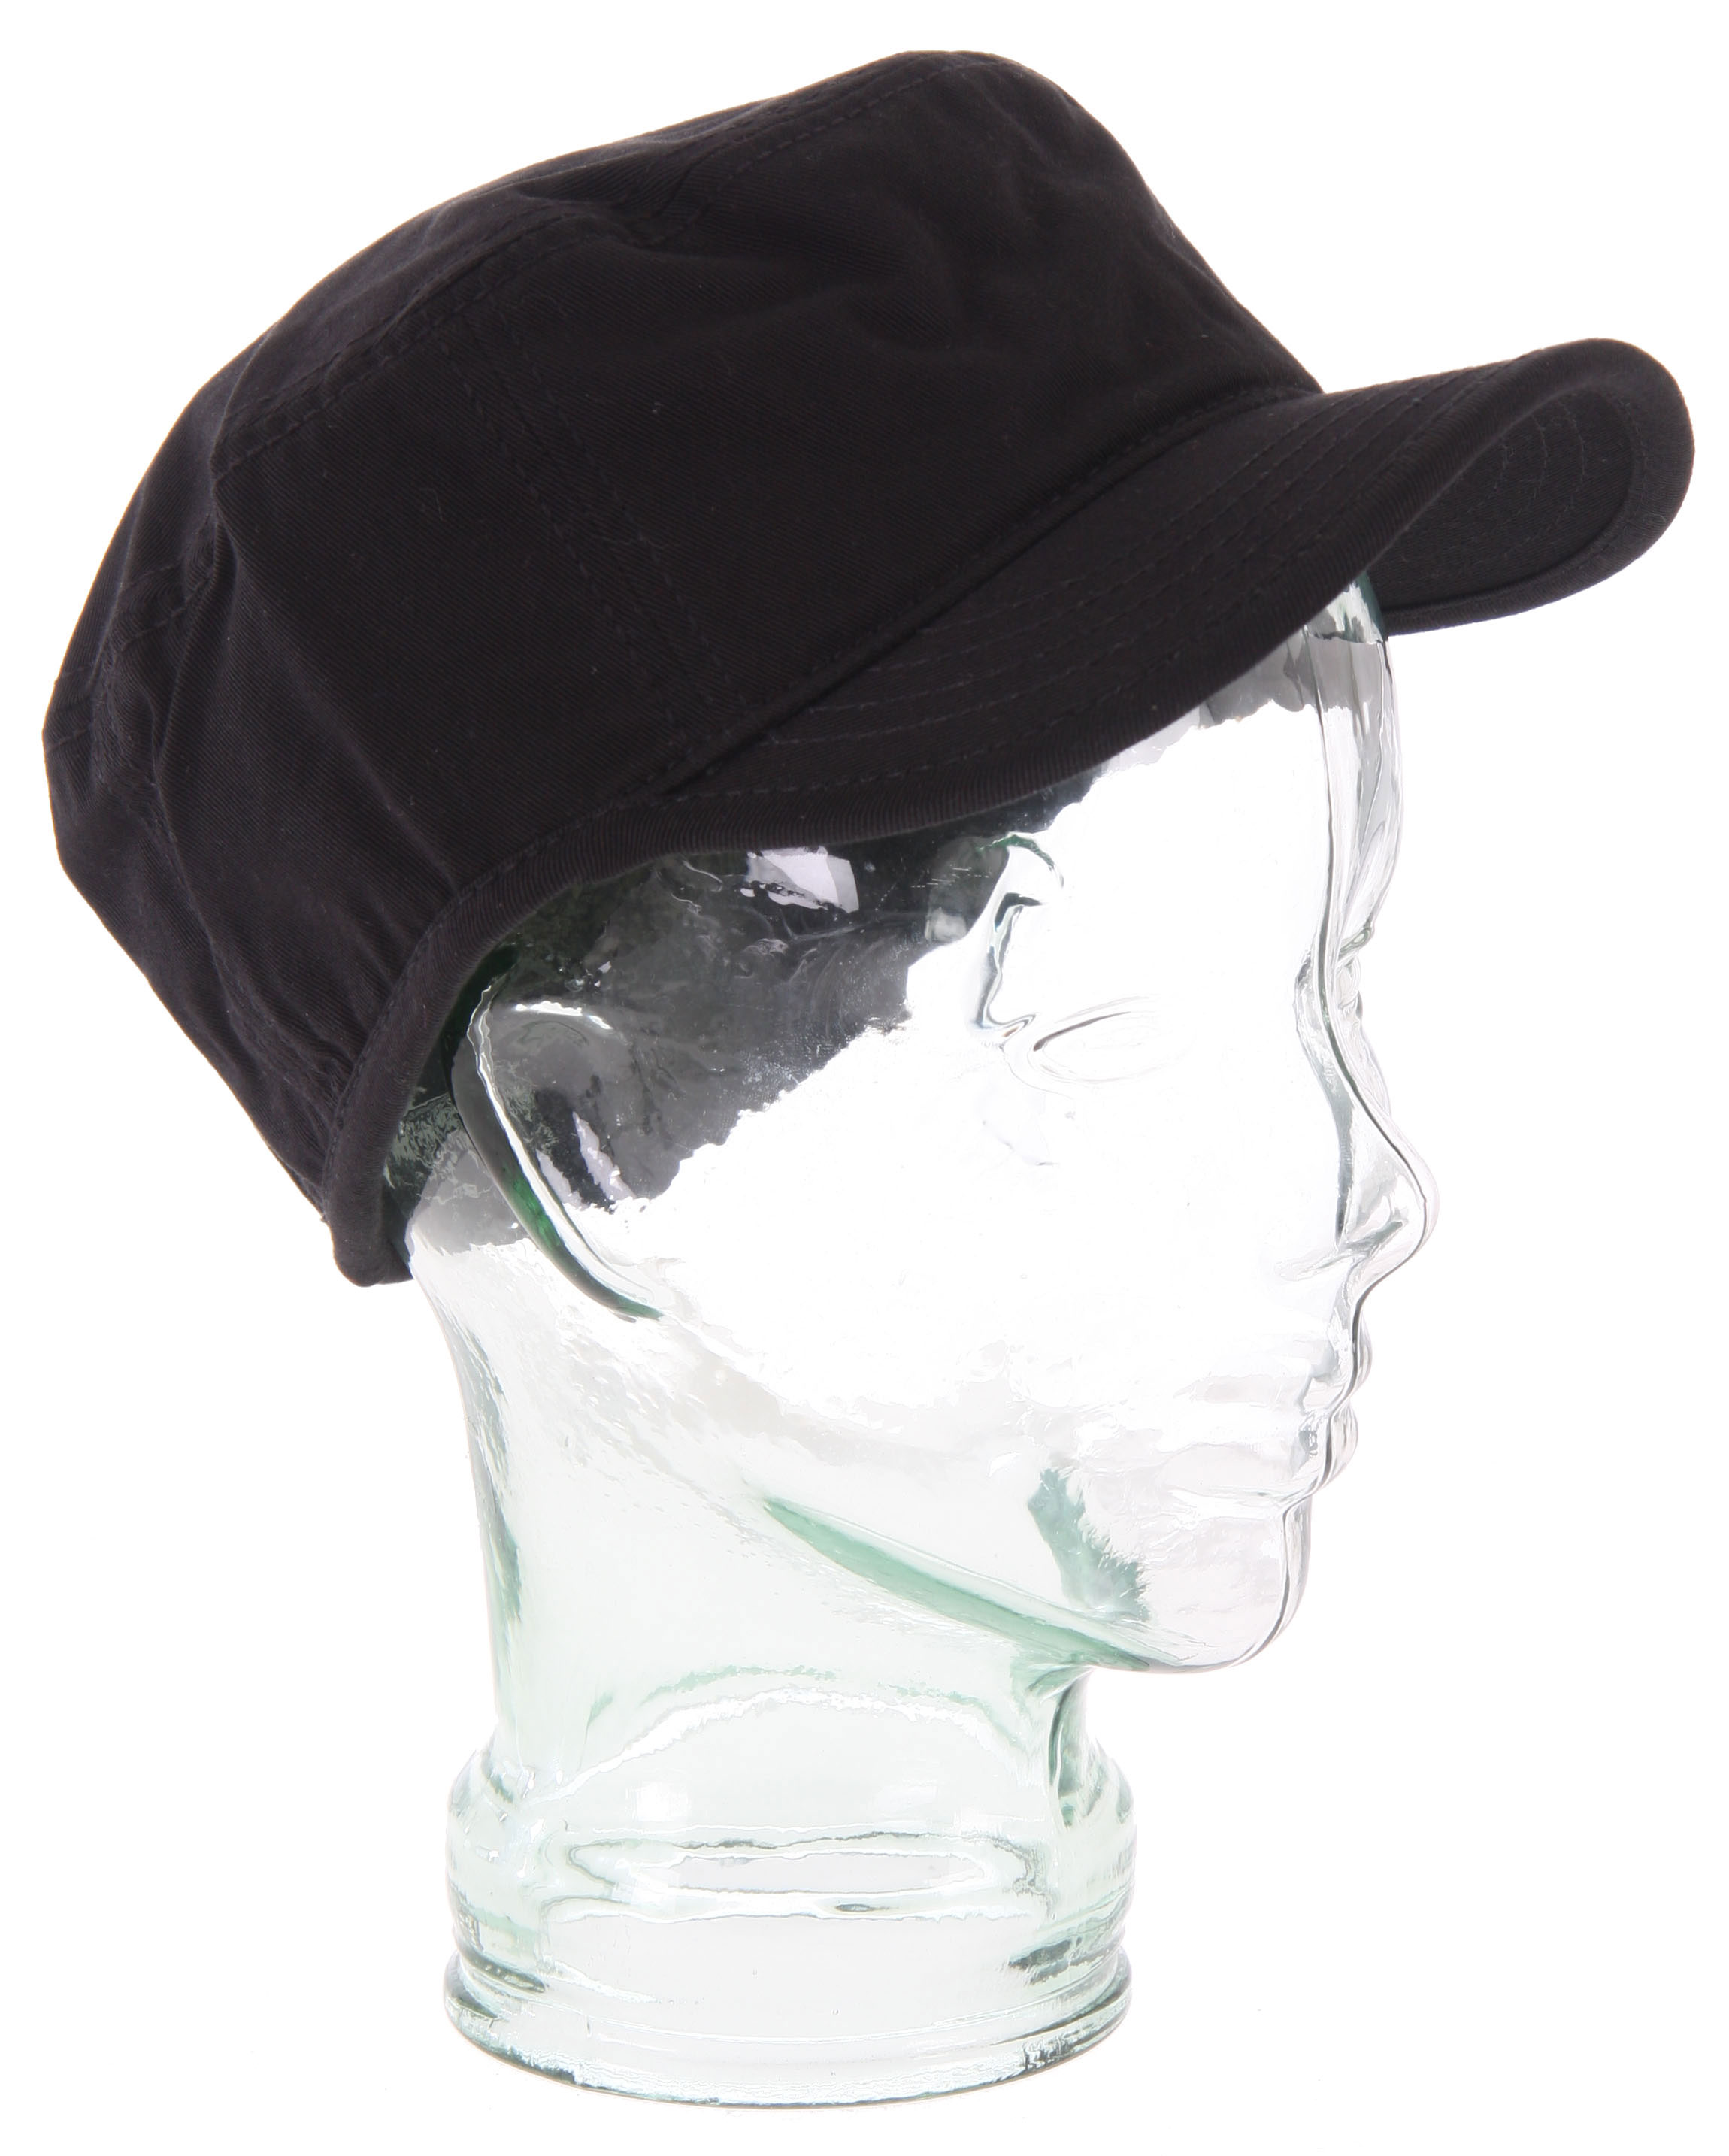 Planet Earth Johnston Hat Black - $11.17